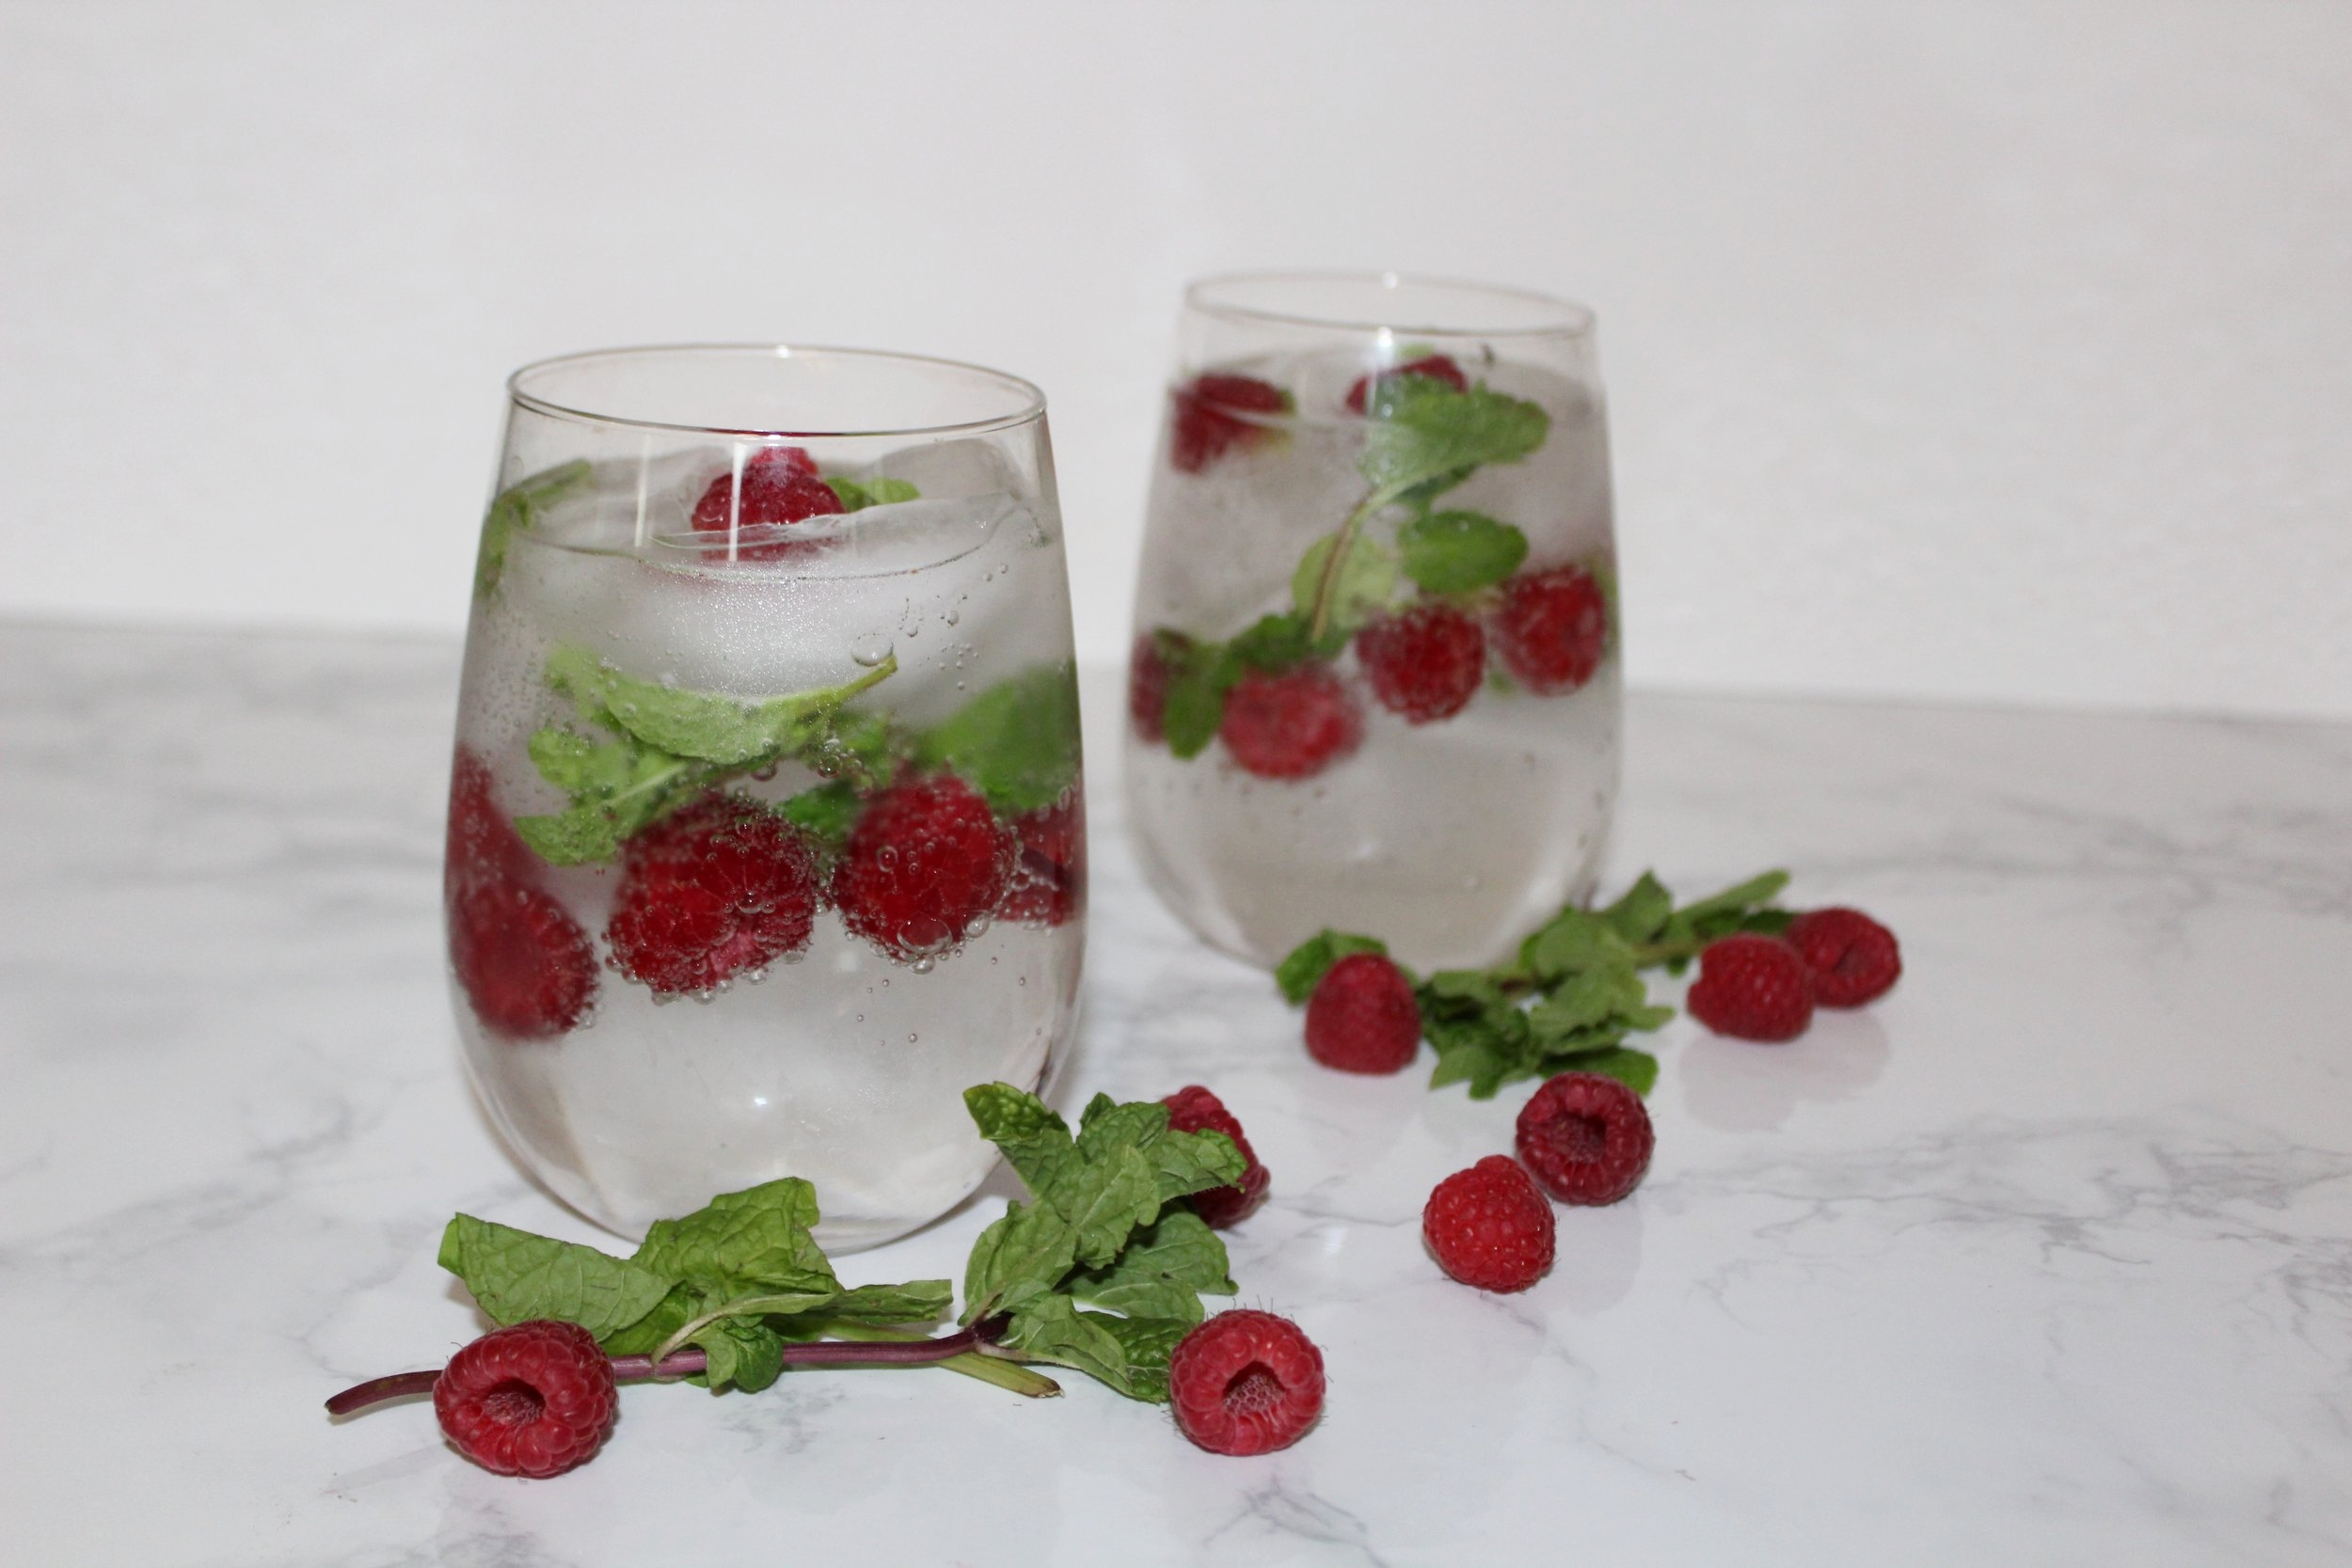 honestlysarcastic,valentinesday,happyvalentinesday,love,cocktail,lovecocktail,healthyeating,healthyliving,loveyourself,cheerstolove,cucumber,raspberry,lime,sparklinglime,cucumbervodka,mint,organic,cheers,drinks,celebrate,selflove